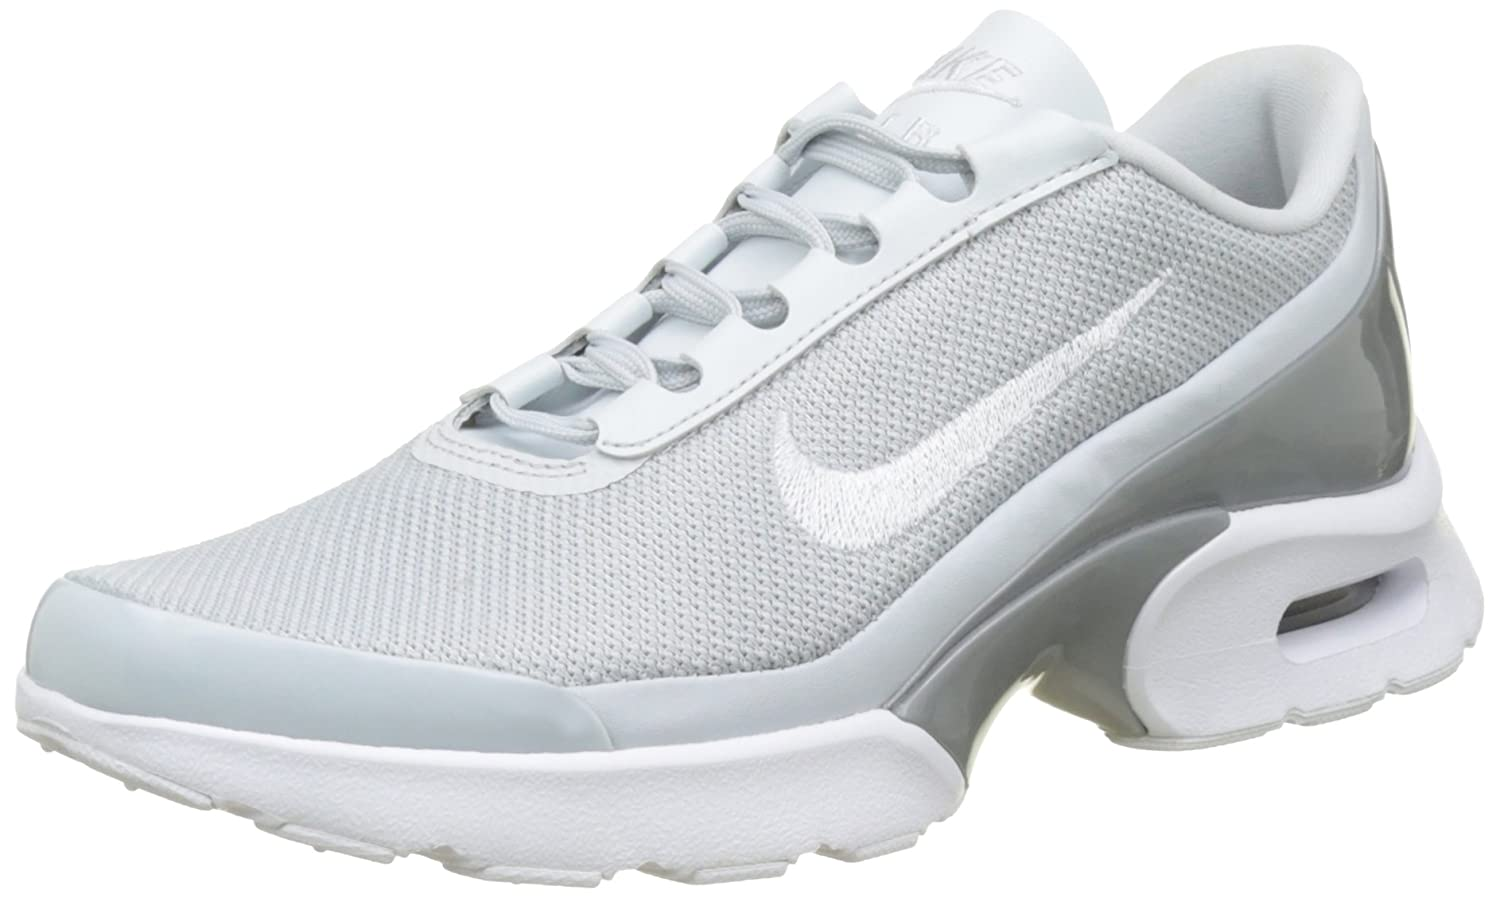 the cheapest good factory authentic Buy Nike Women's Air Max Jewell PRM Pure Platinum 904576-001 (Size ...